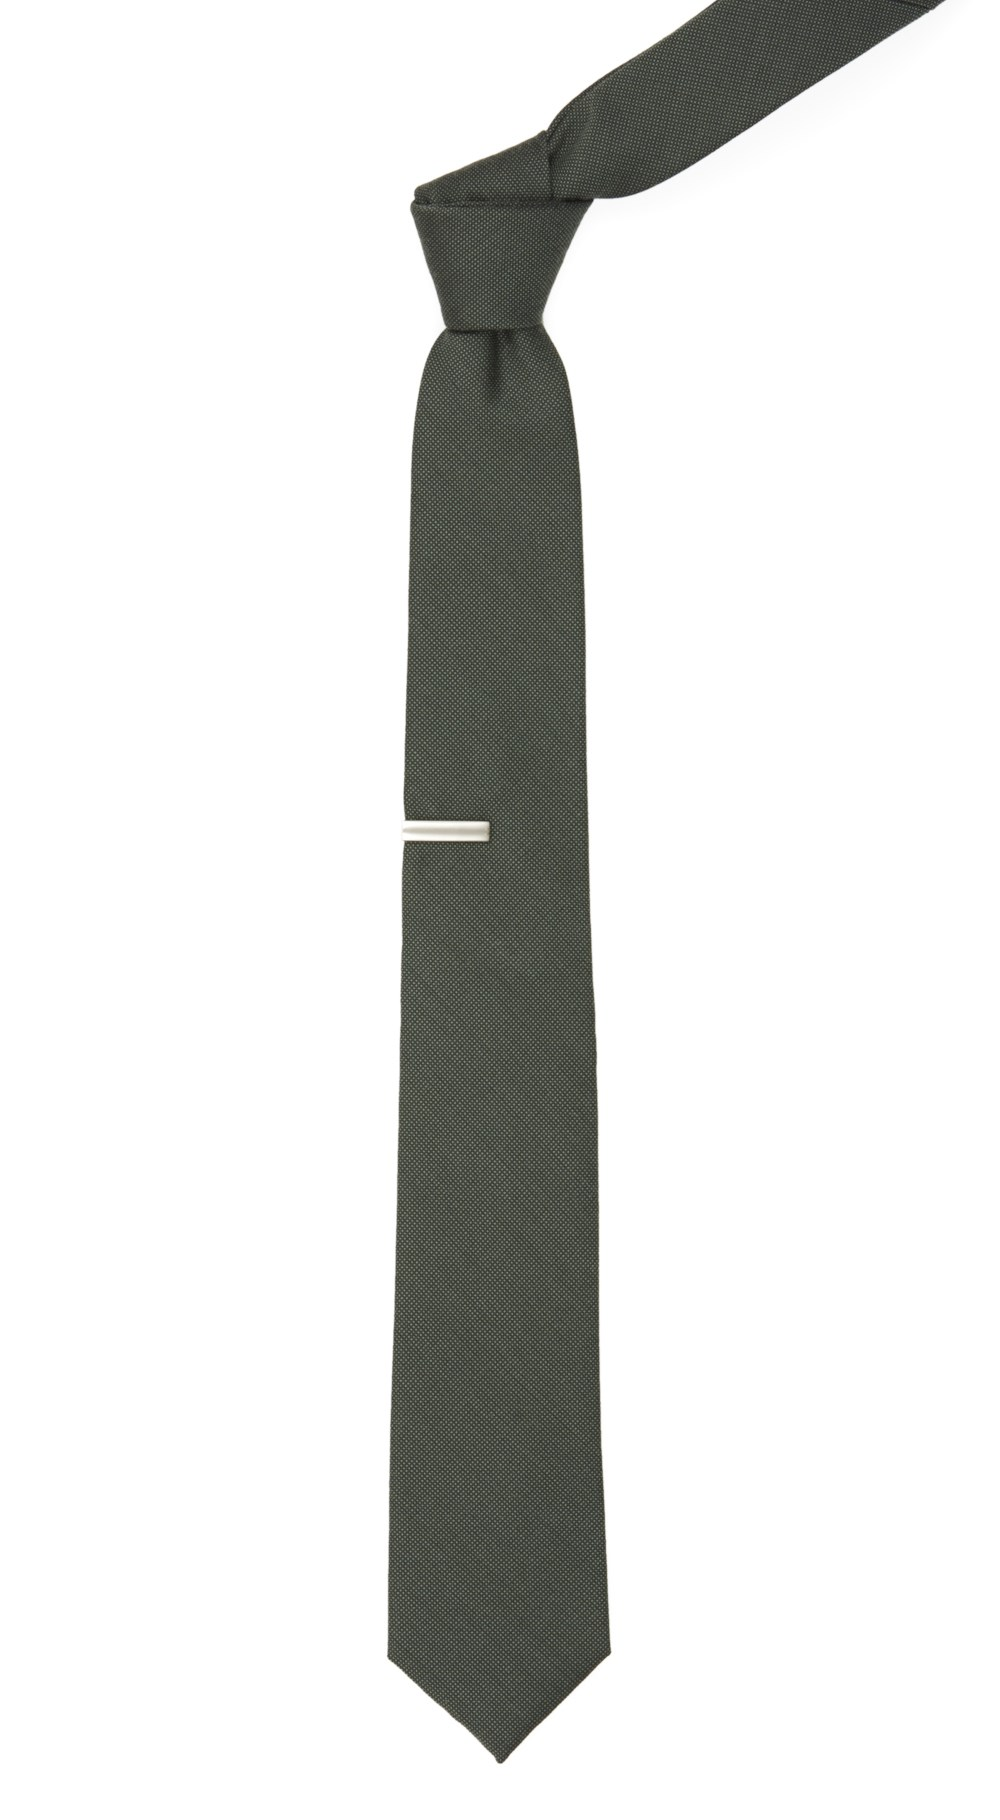 Army green downtown solid tie ties bow ties and pocket squares army green downtown solid tie army green downtown solid tie ccuart Images